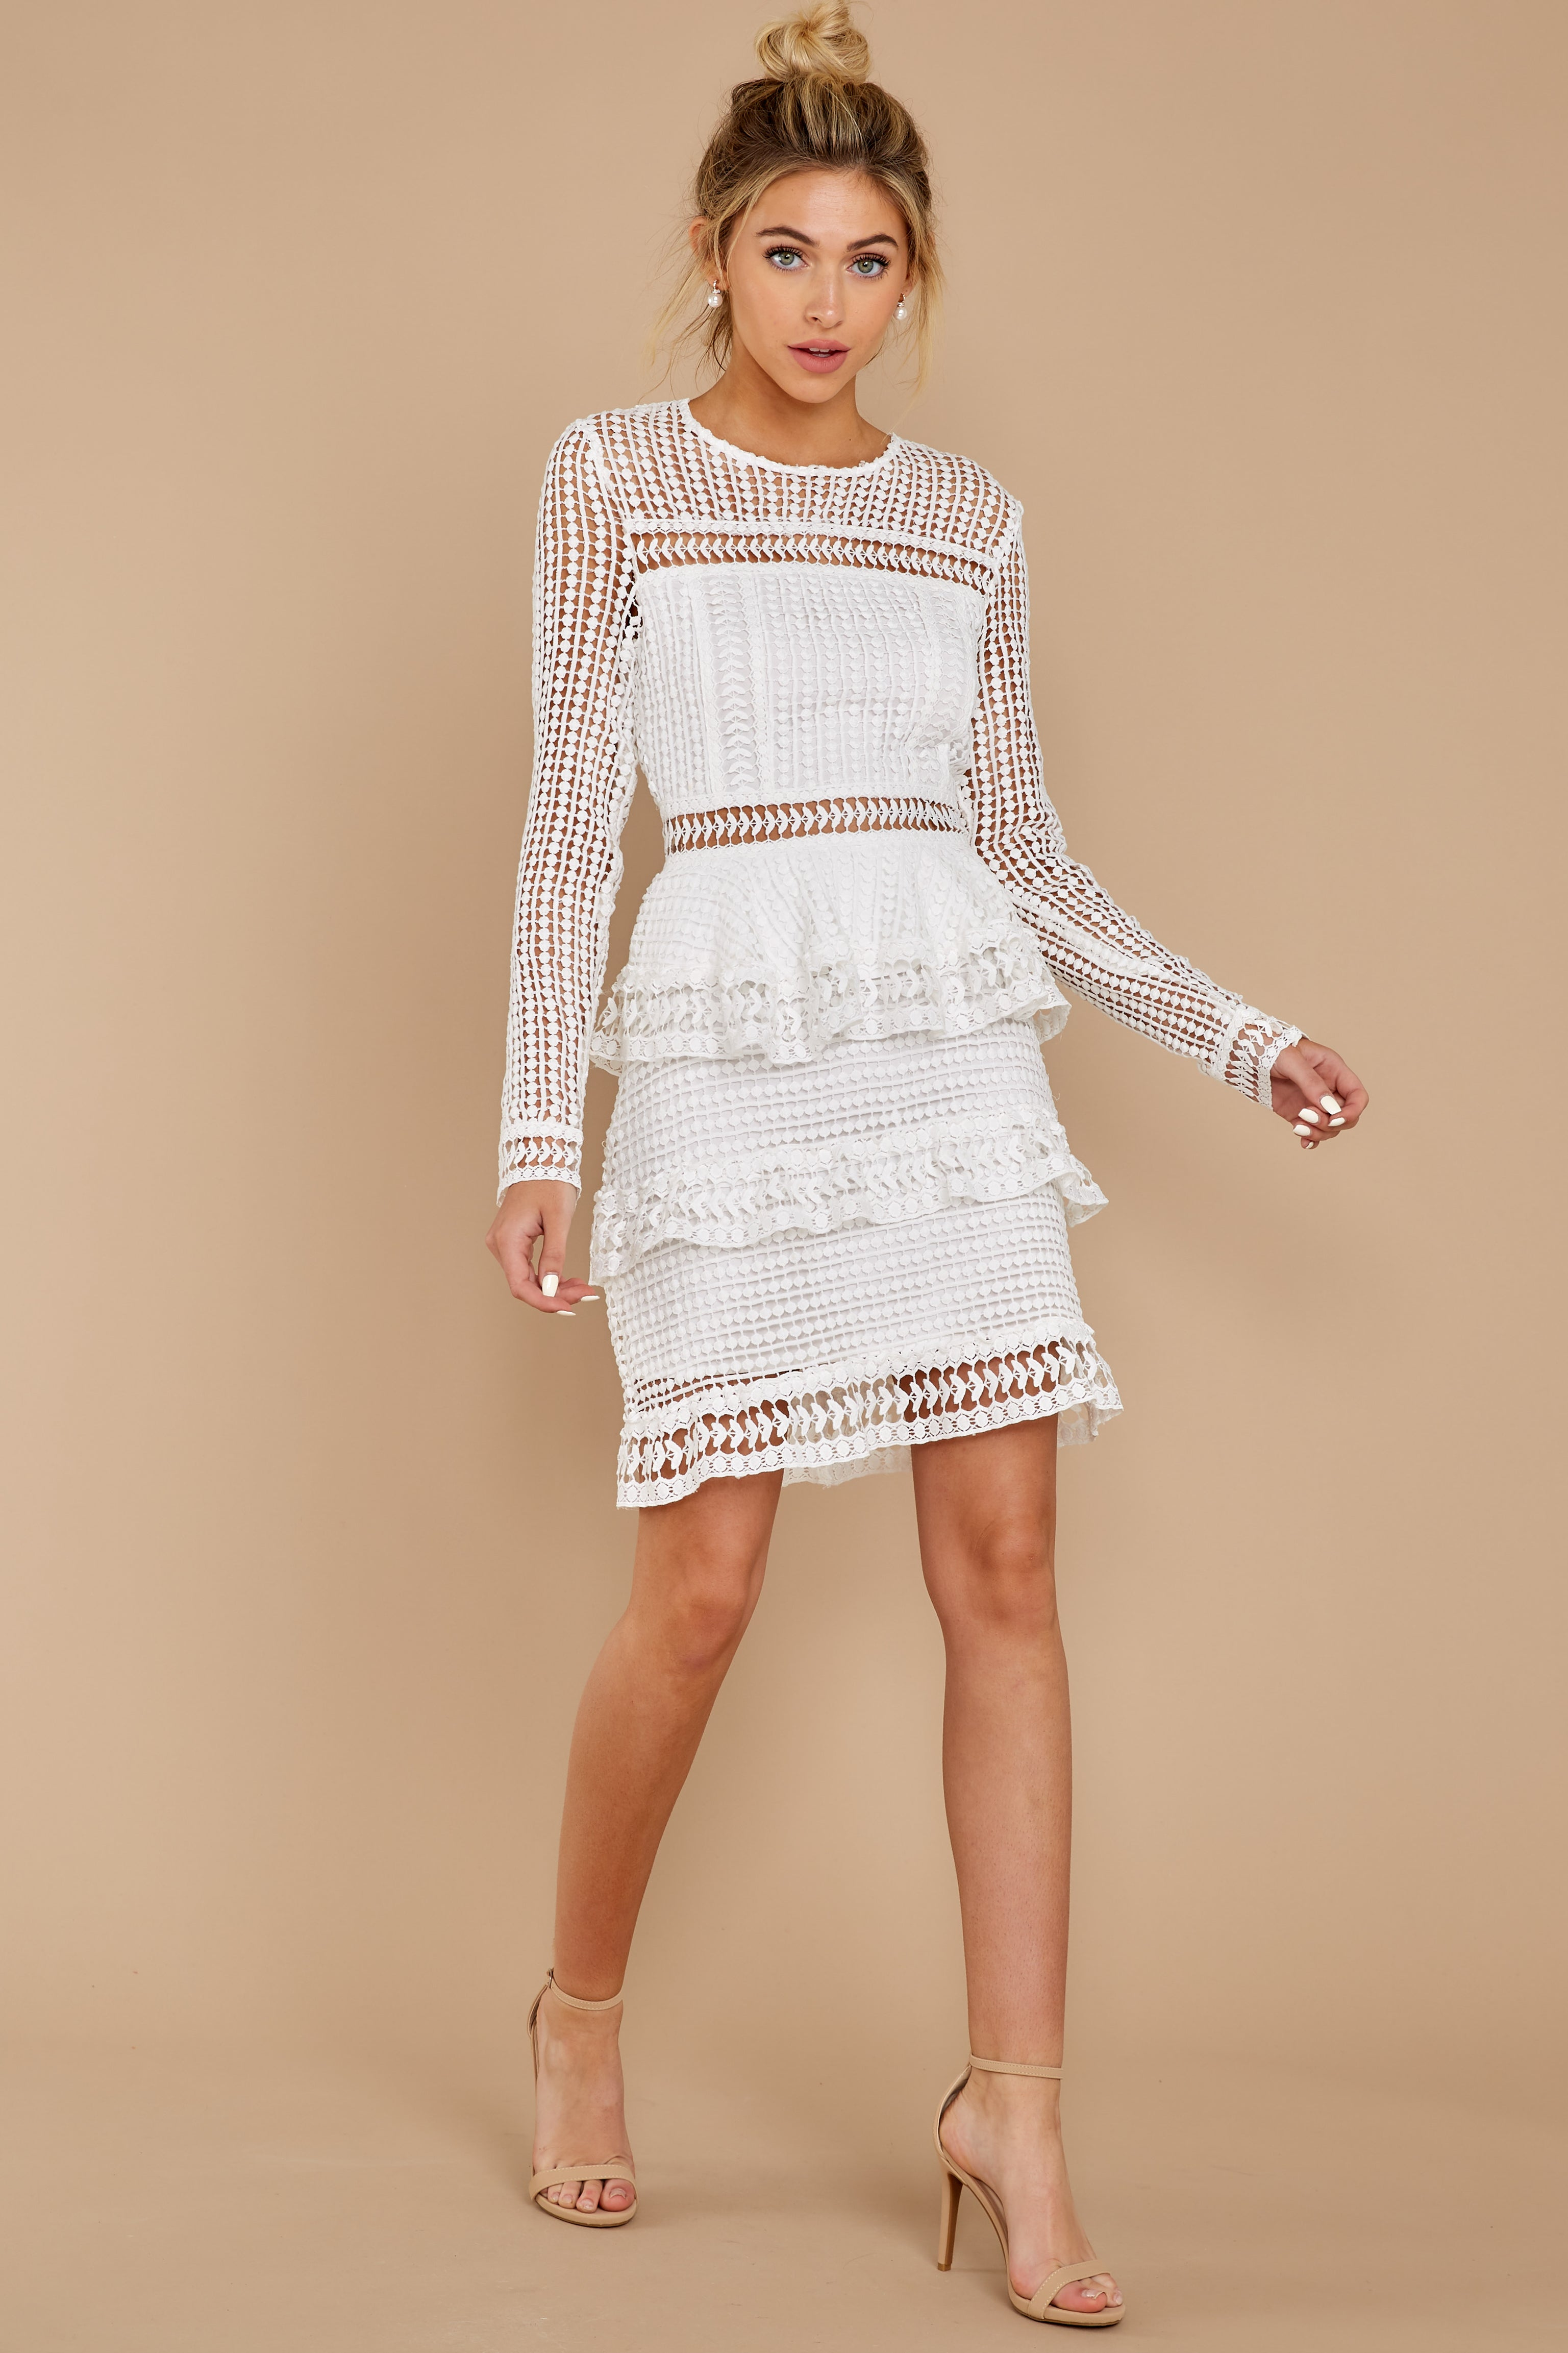 5 Out For Love White Lace Dress at redress.com